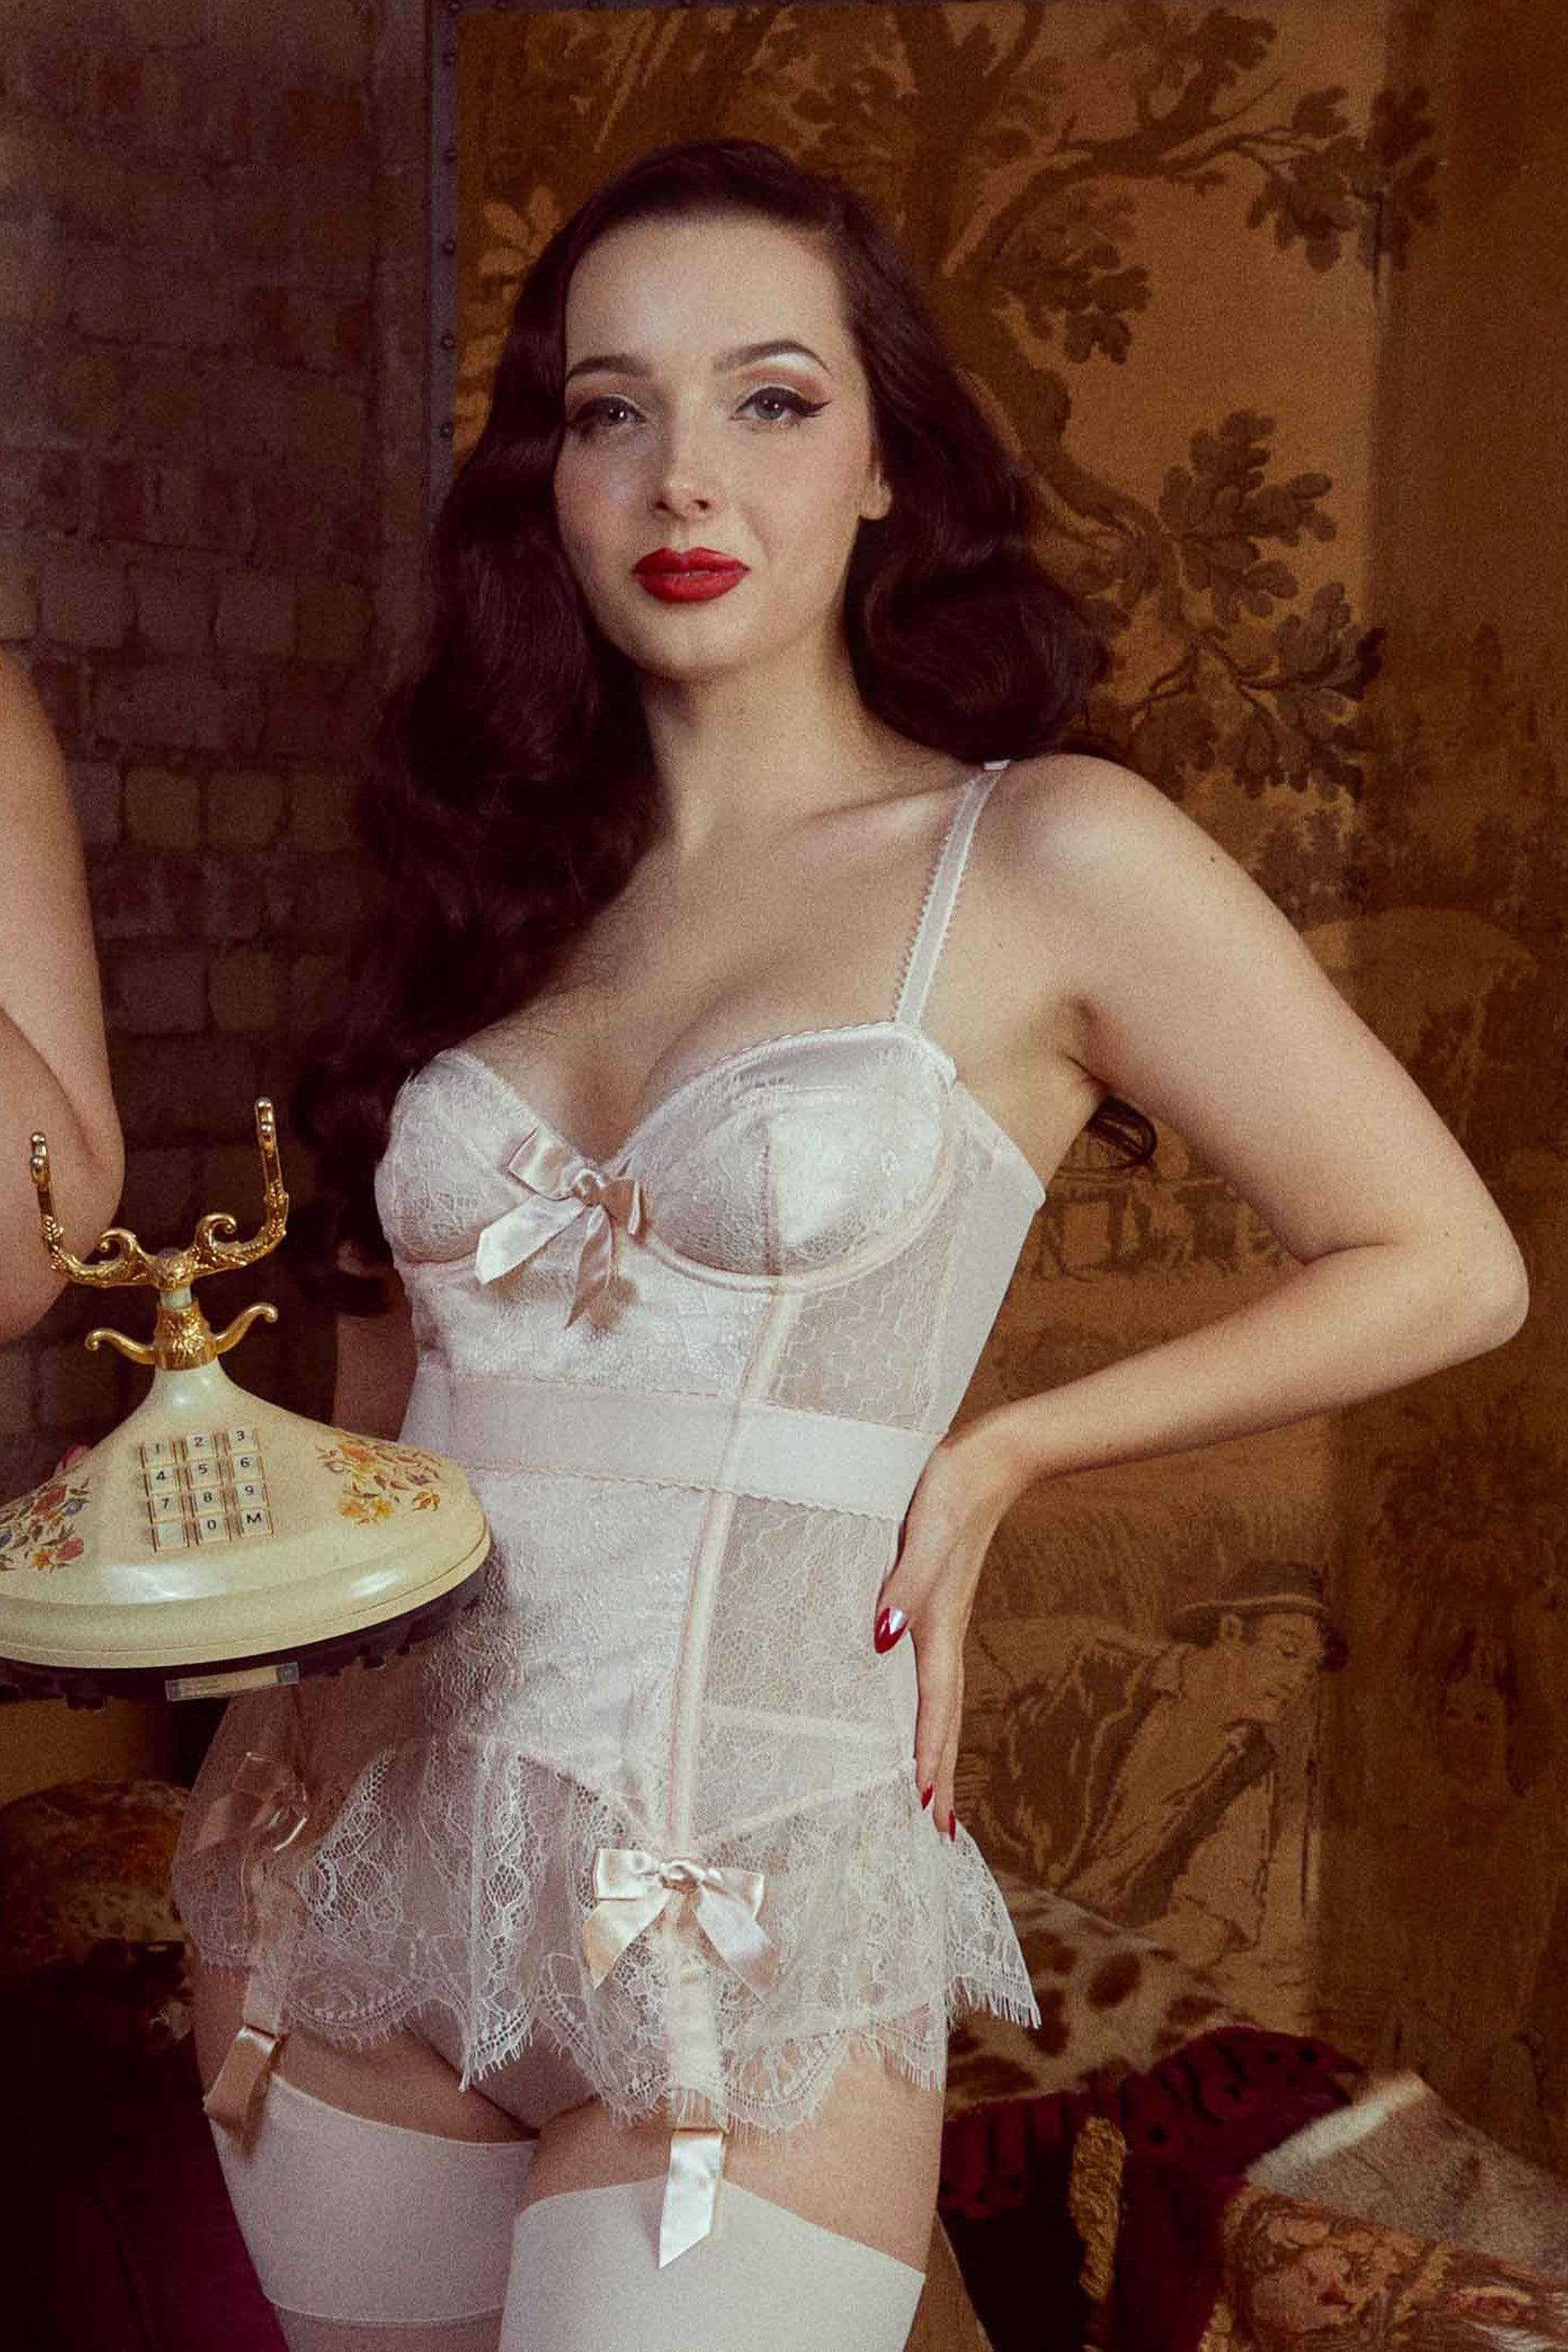 Bettie Page Tempest Peach Lace Basque with Bows 36DD